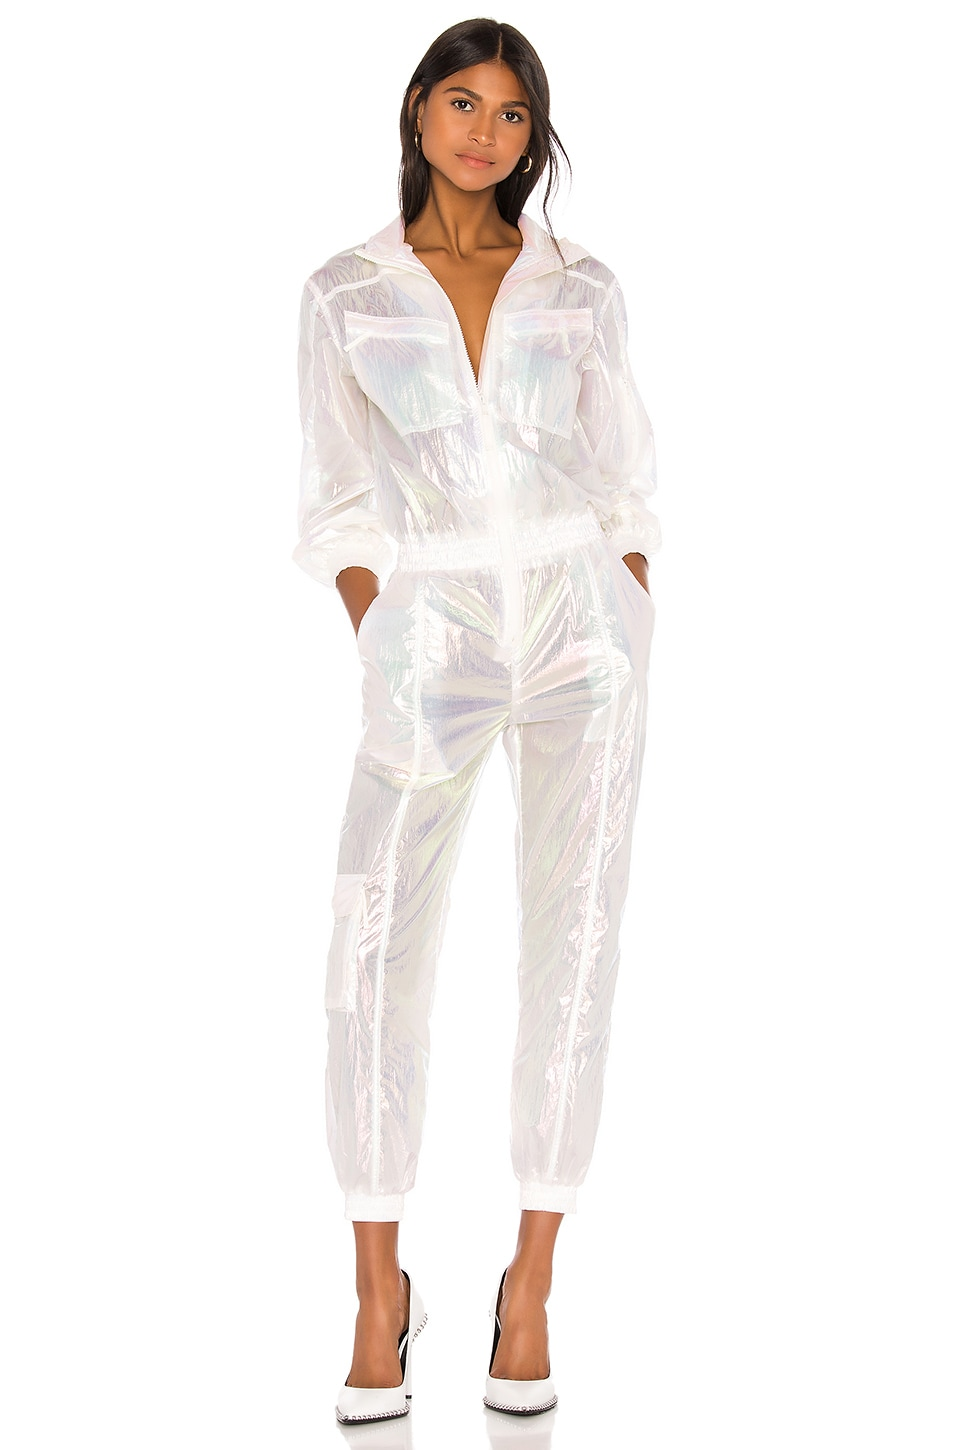 JONATHAN SIMKHAI x REVOLVE Boilersuit in Iridescent